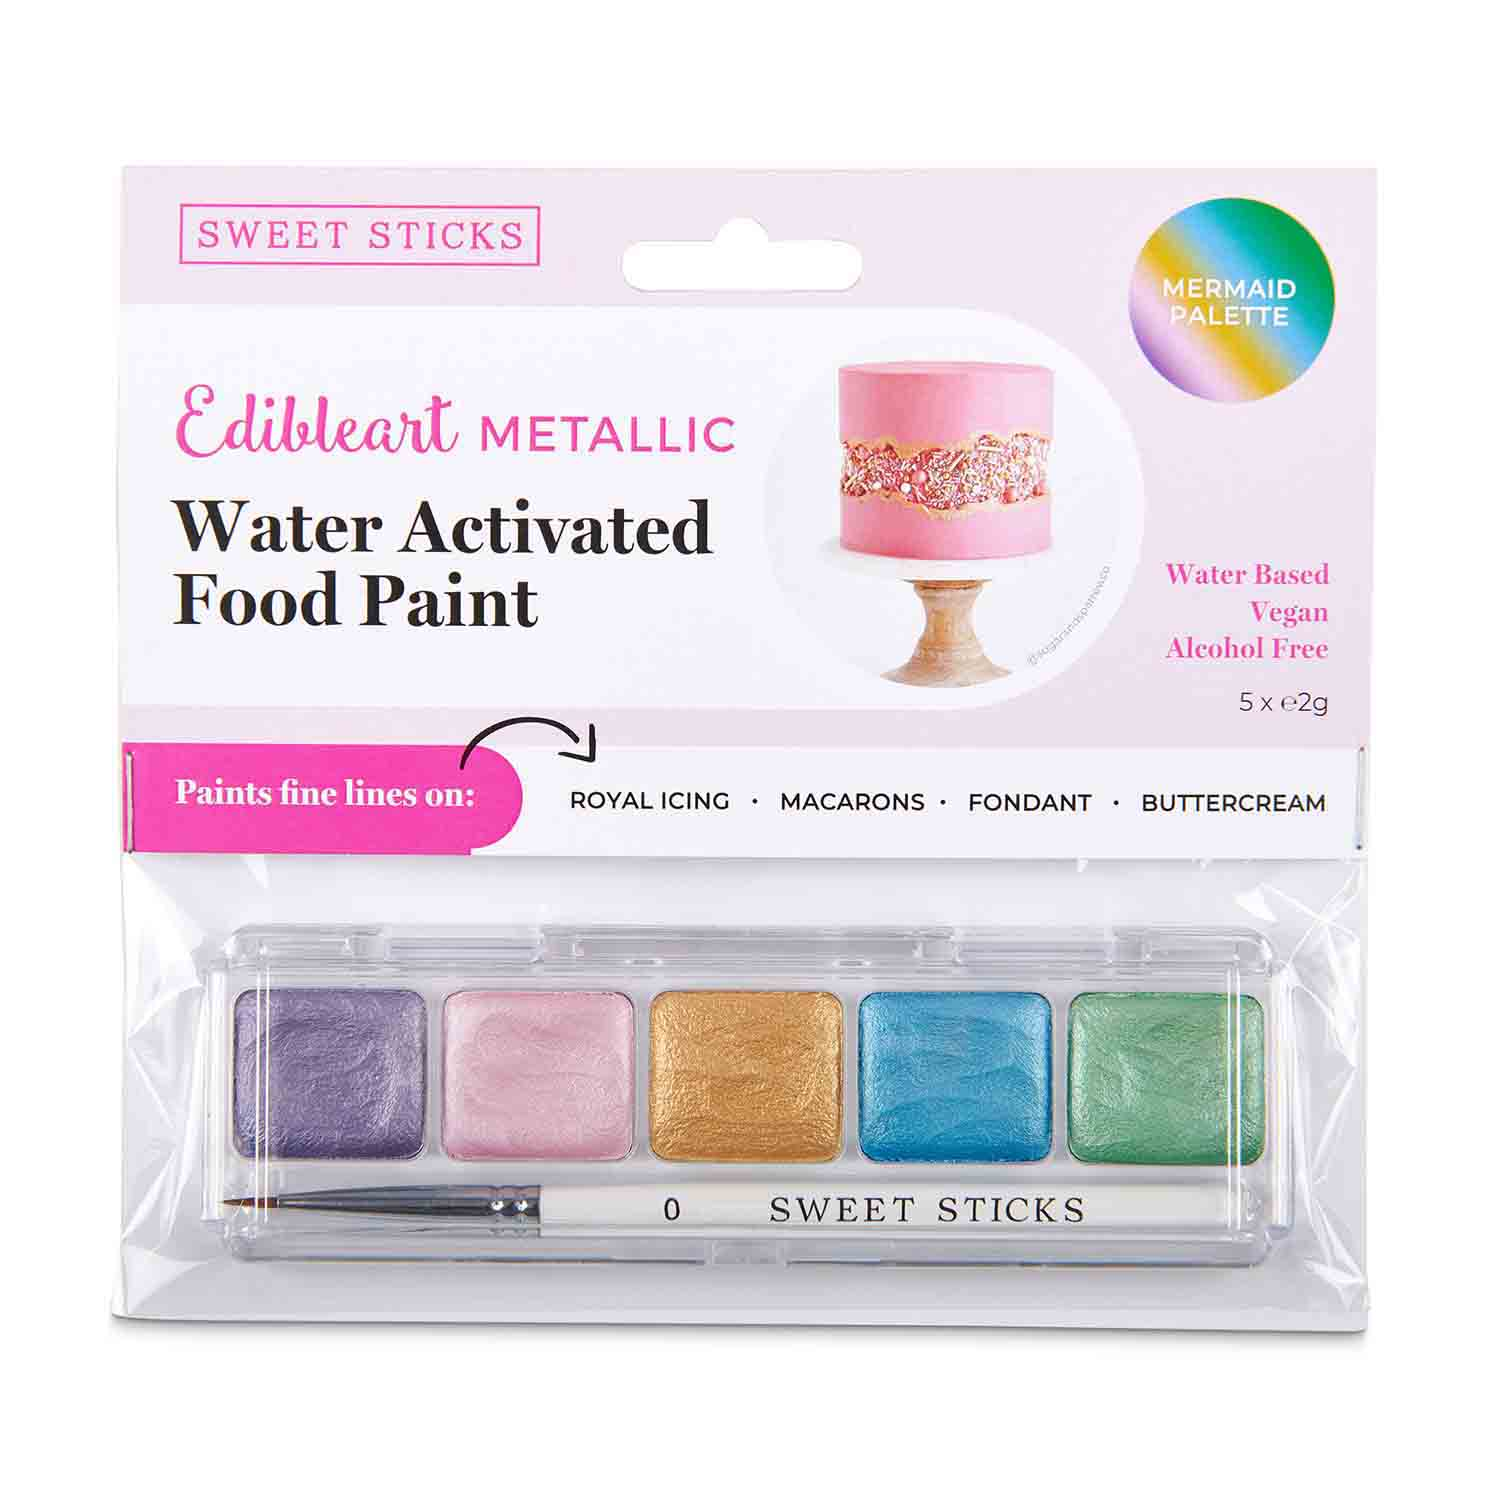 Mermaid Palette Metallic Water Activated Food Paint